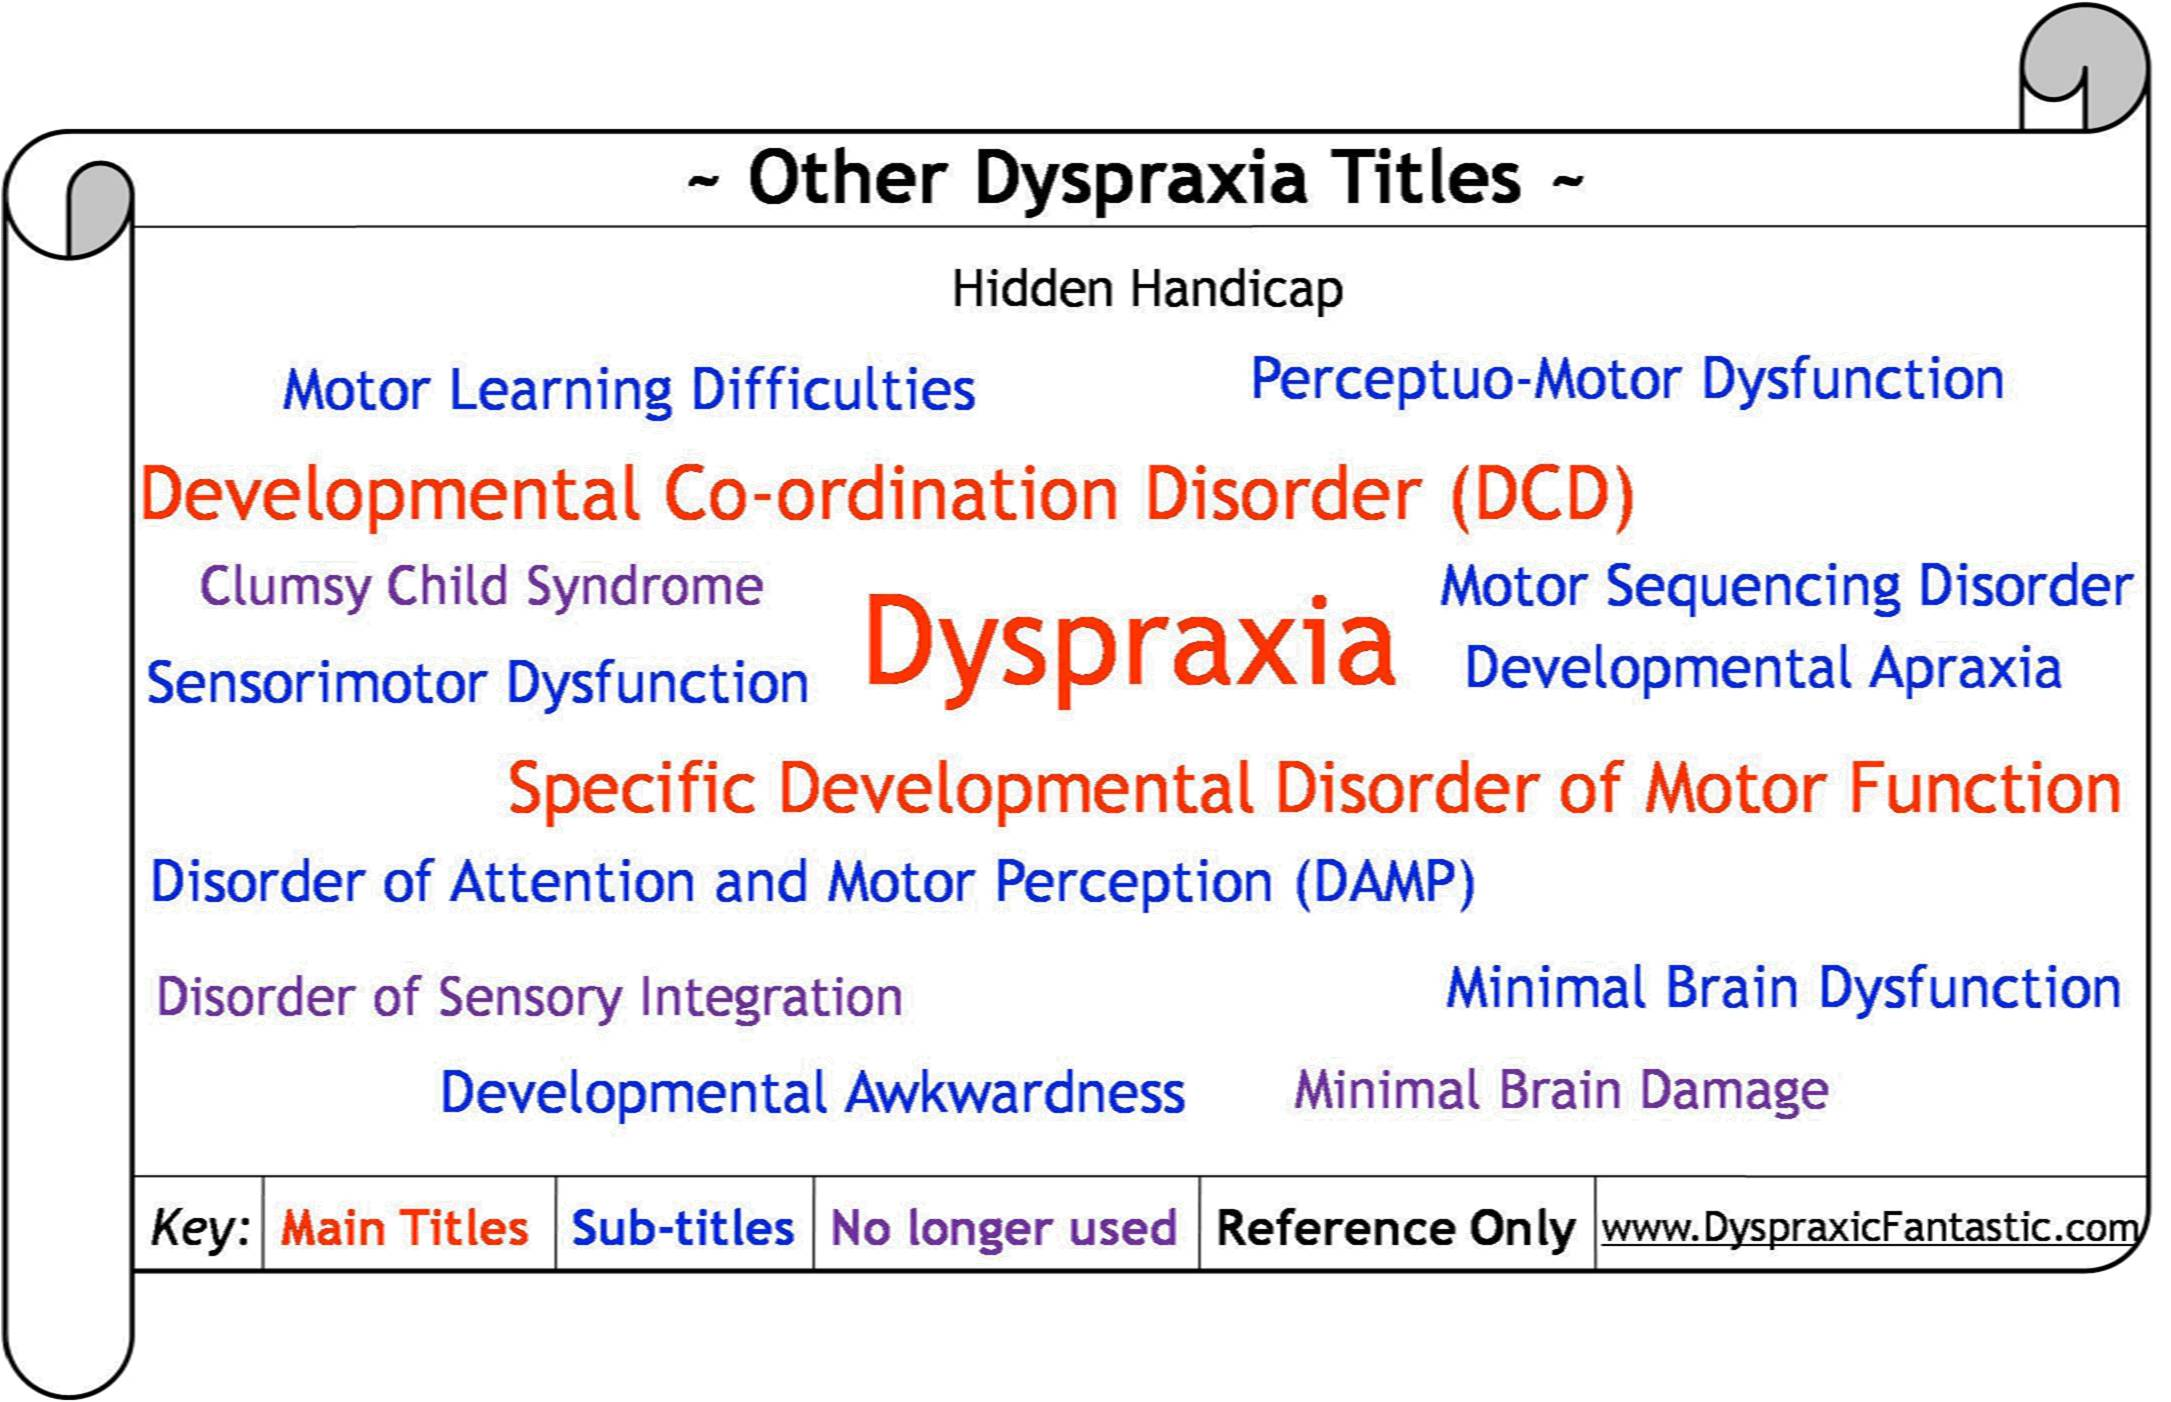 Other Dyspraxia Titles